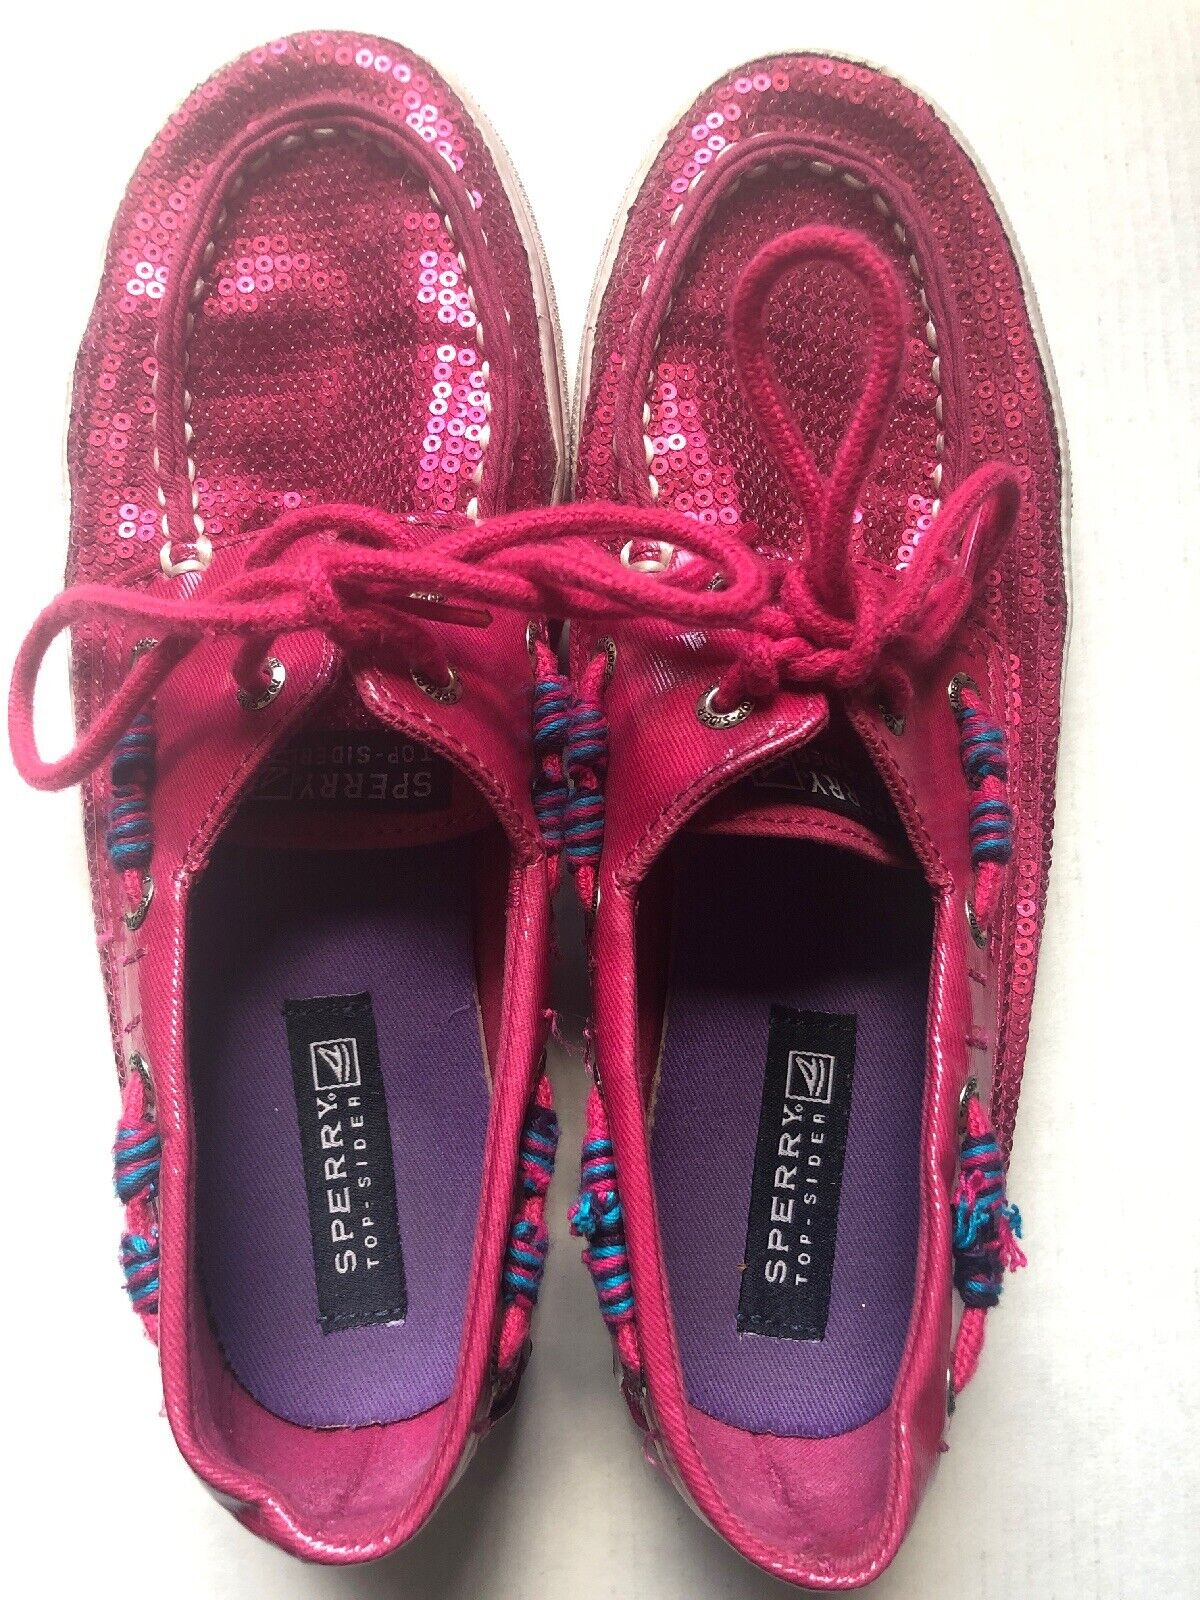 Sperry Top Sider Hot Pink Sequin Girls Boat Shoes 2 3 Dress MSRP $60 NEW